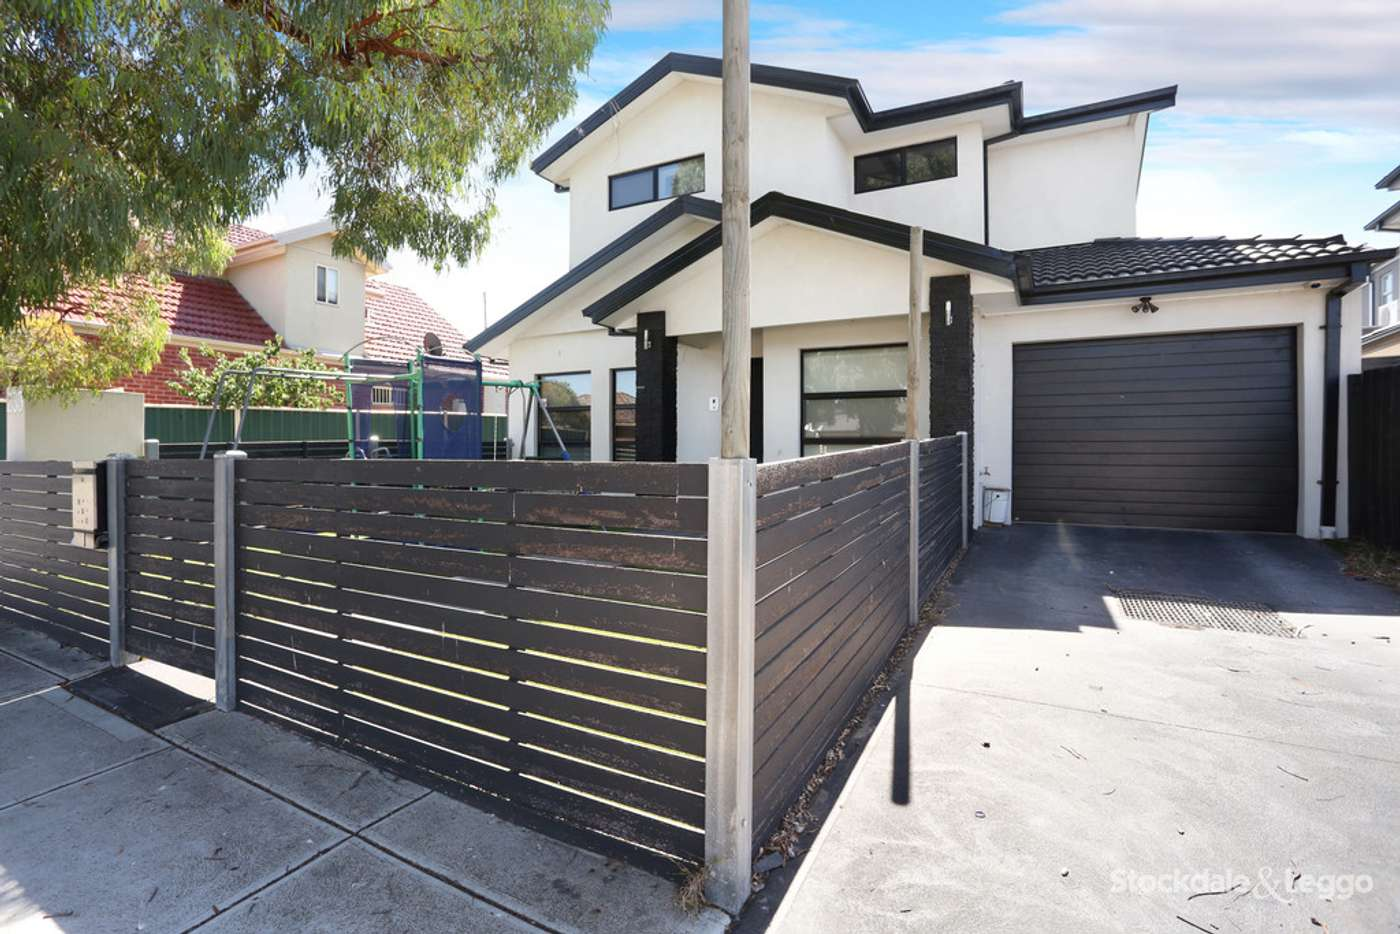 Main view of Homely townhouse listing, 1/260 Hilton Street, Glenroy VIC 3046